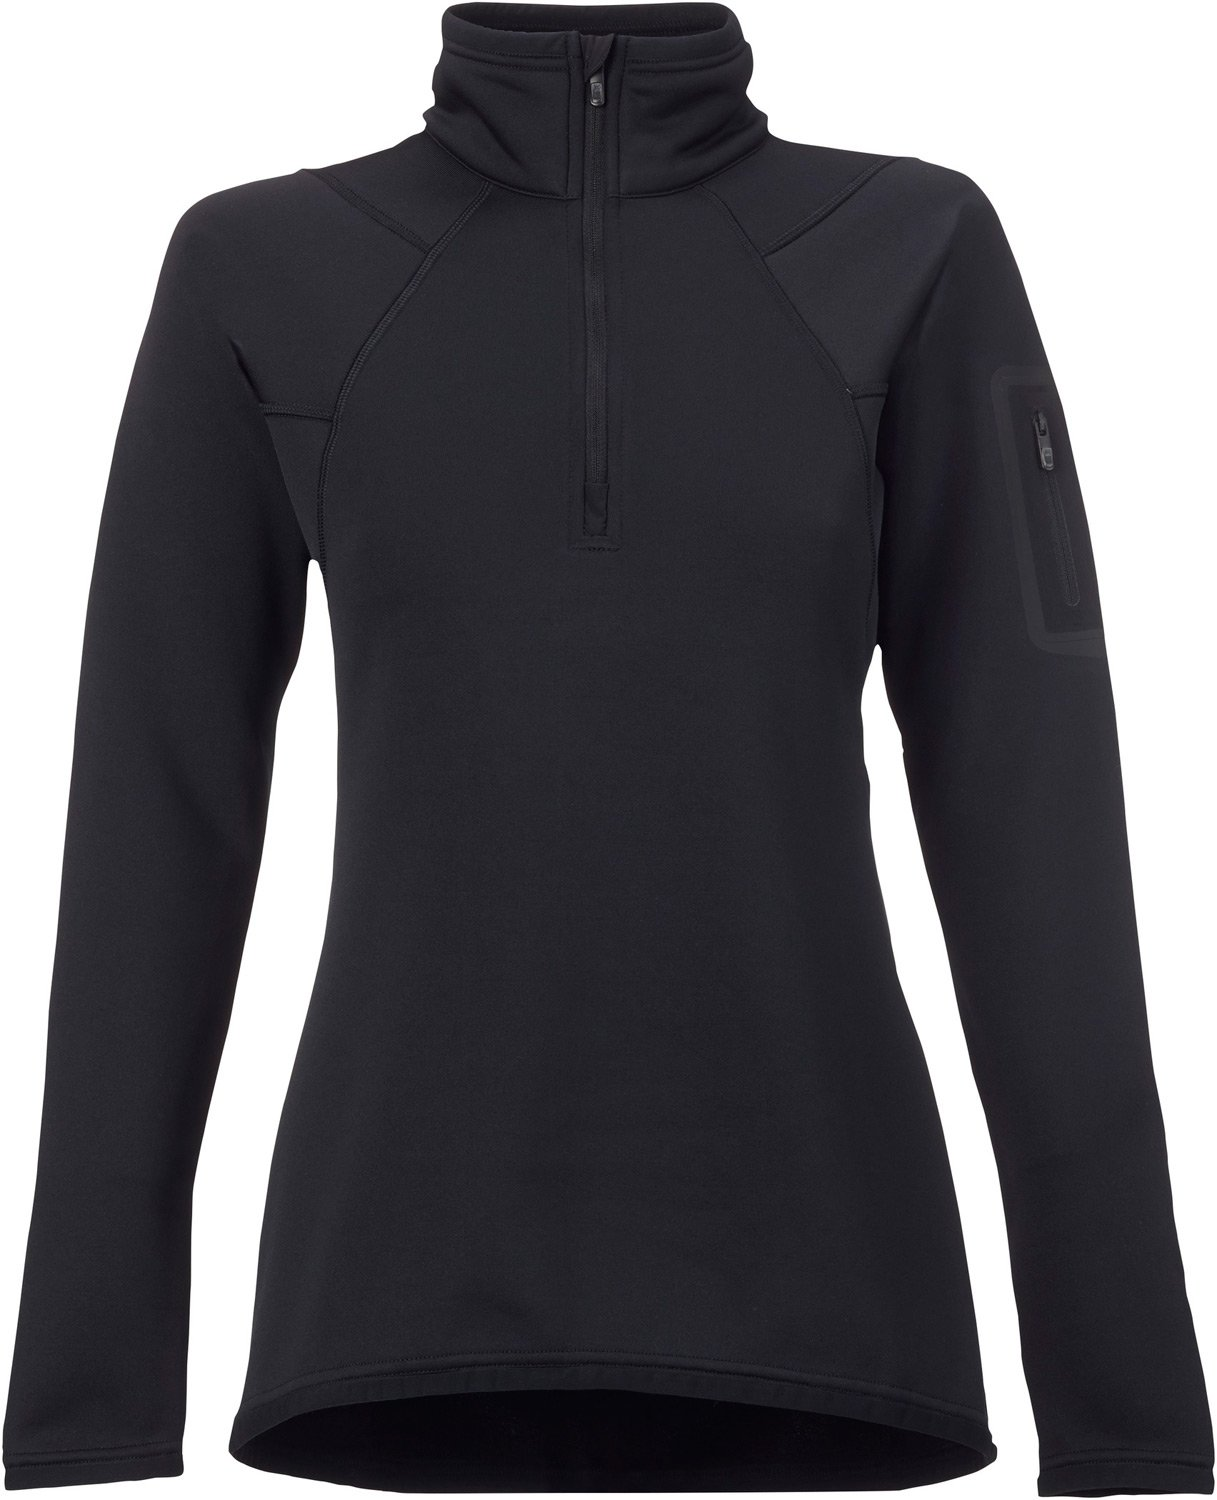 Burton Women's AK Lift Half Zip Fleece Top, True Black, Medium